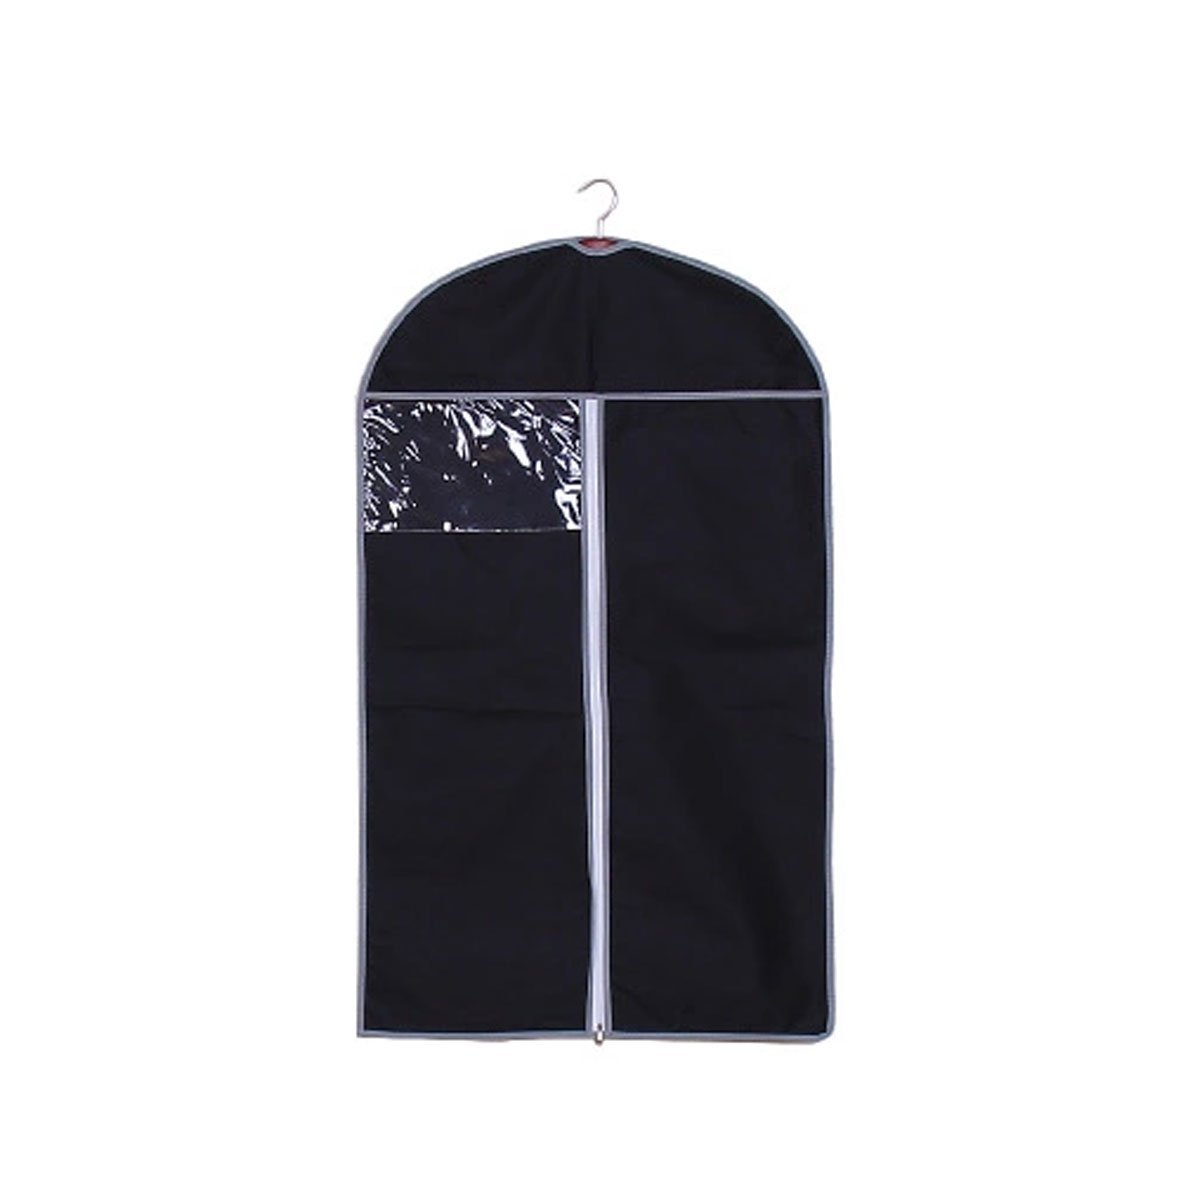 Garment Suit Bag Covers for Luggage, Dresses, Linens, Storage or Travel with Clear Window,40 X 24 inch,Pack of 5